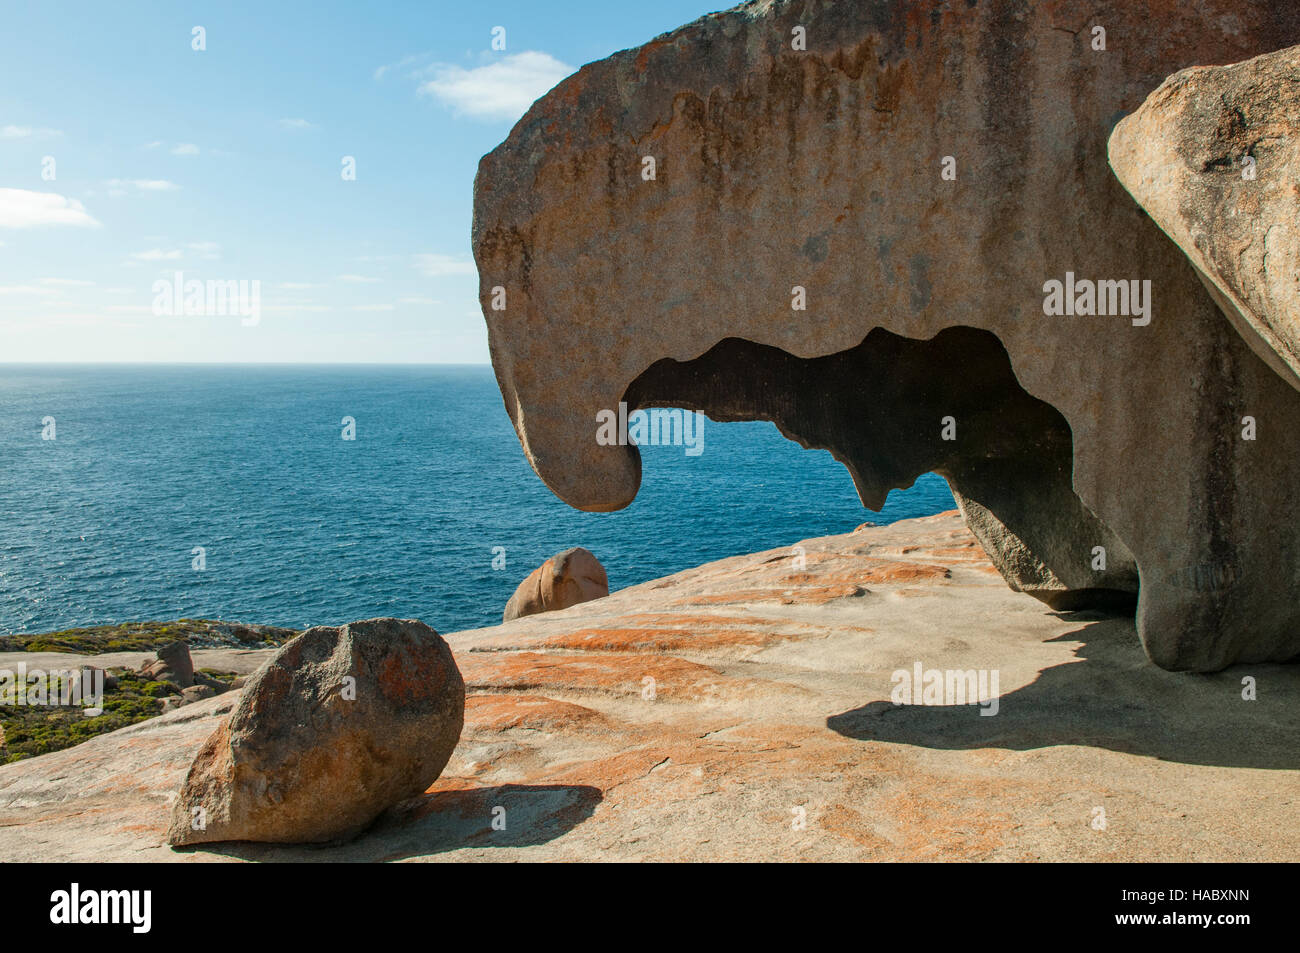 Remarkable Rocks, Kangaroo Island, South Australia, Australia - Stock Image